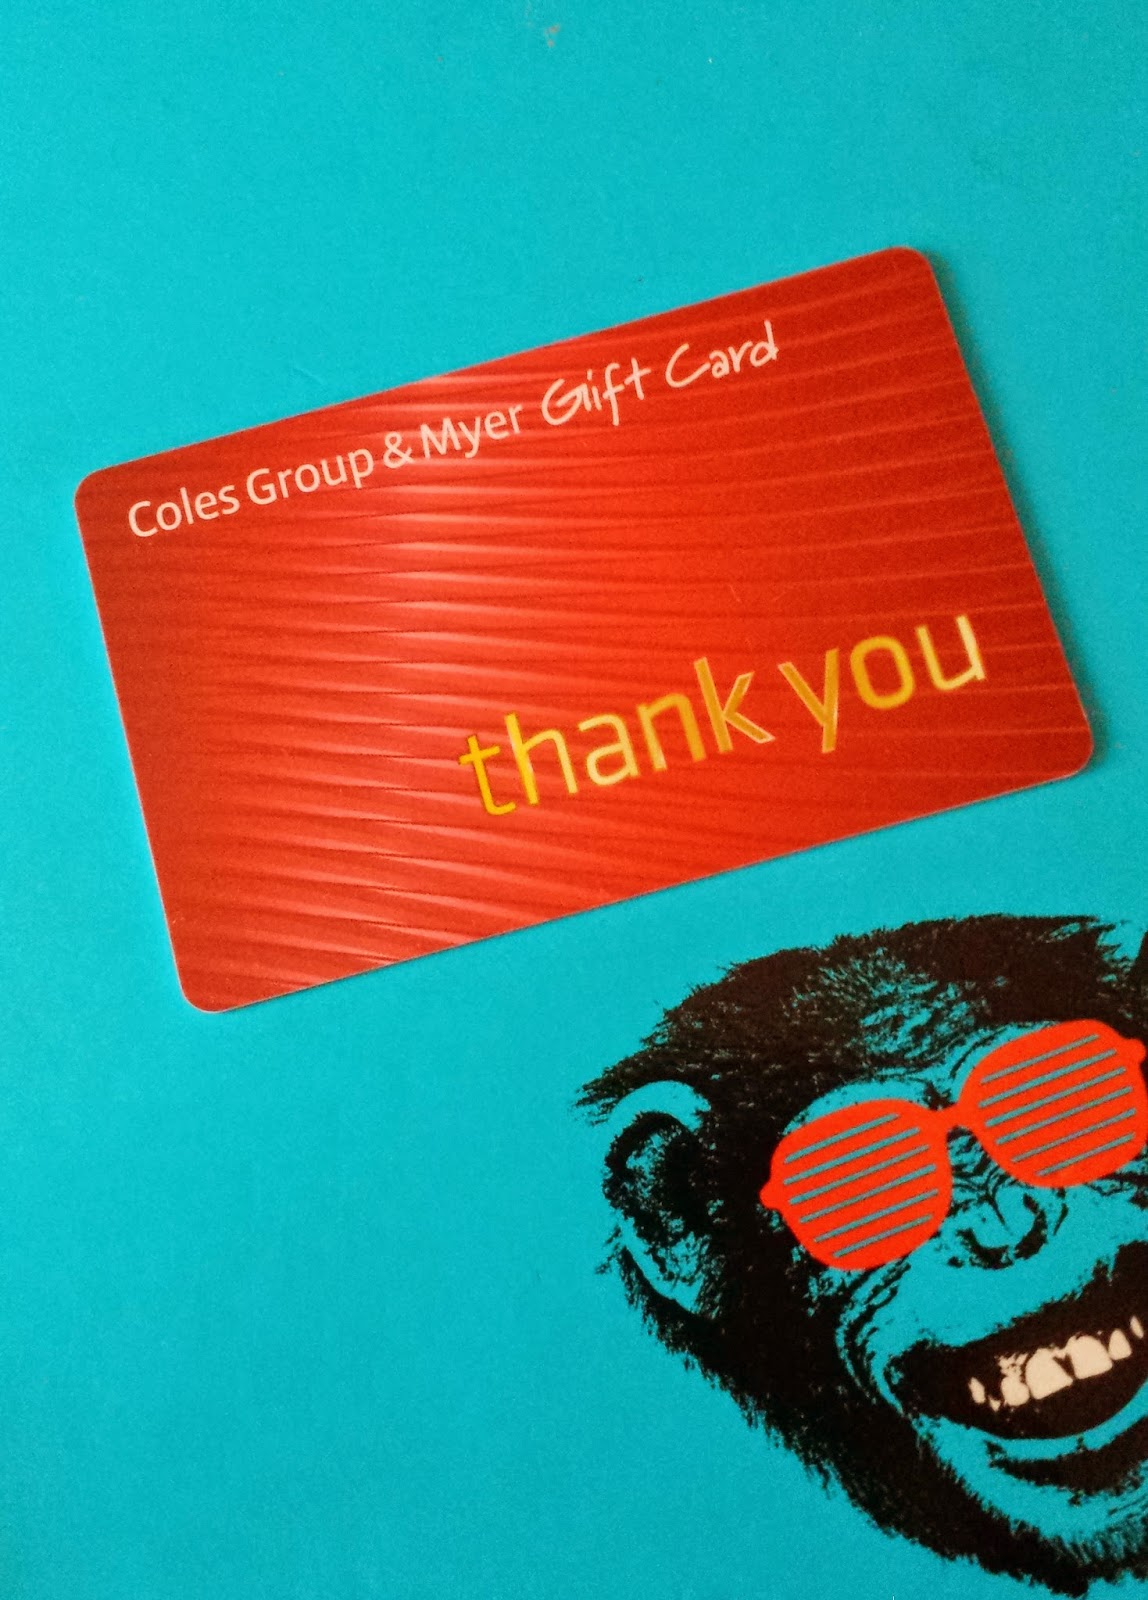 Coles Giftcard Balance How To Earn Online Surveys Cash Gift Cards Free Samples And